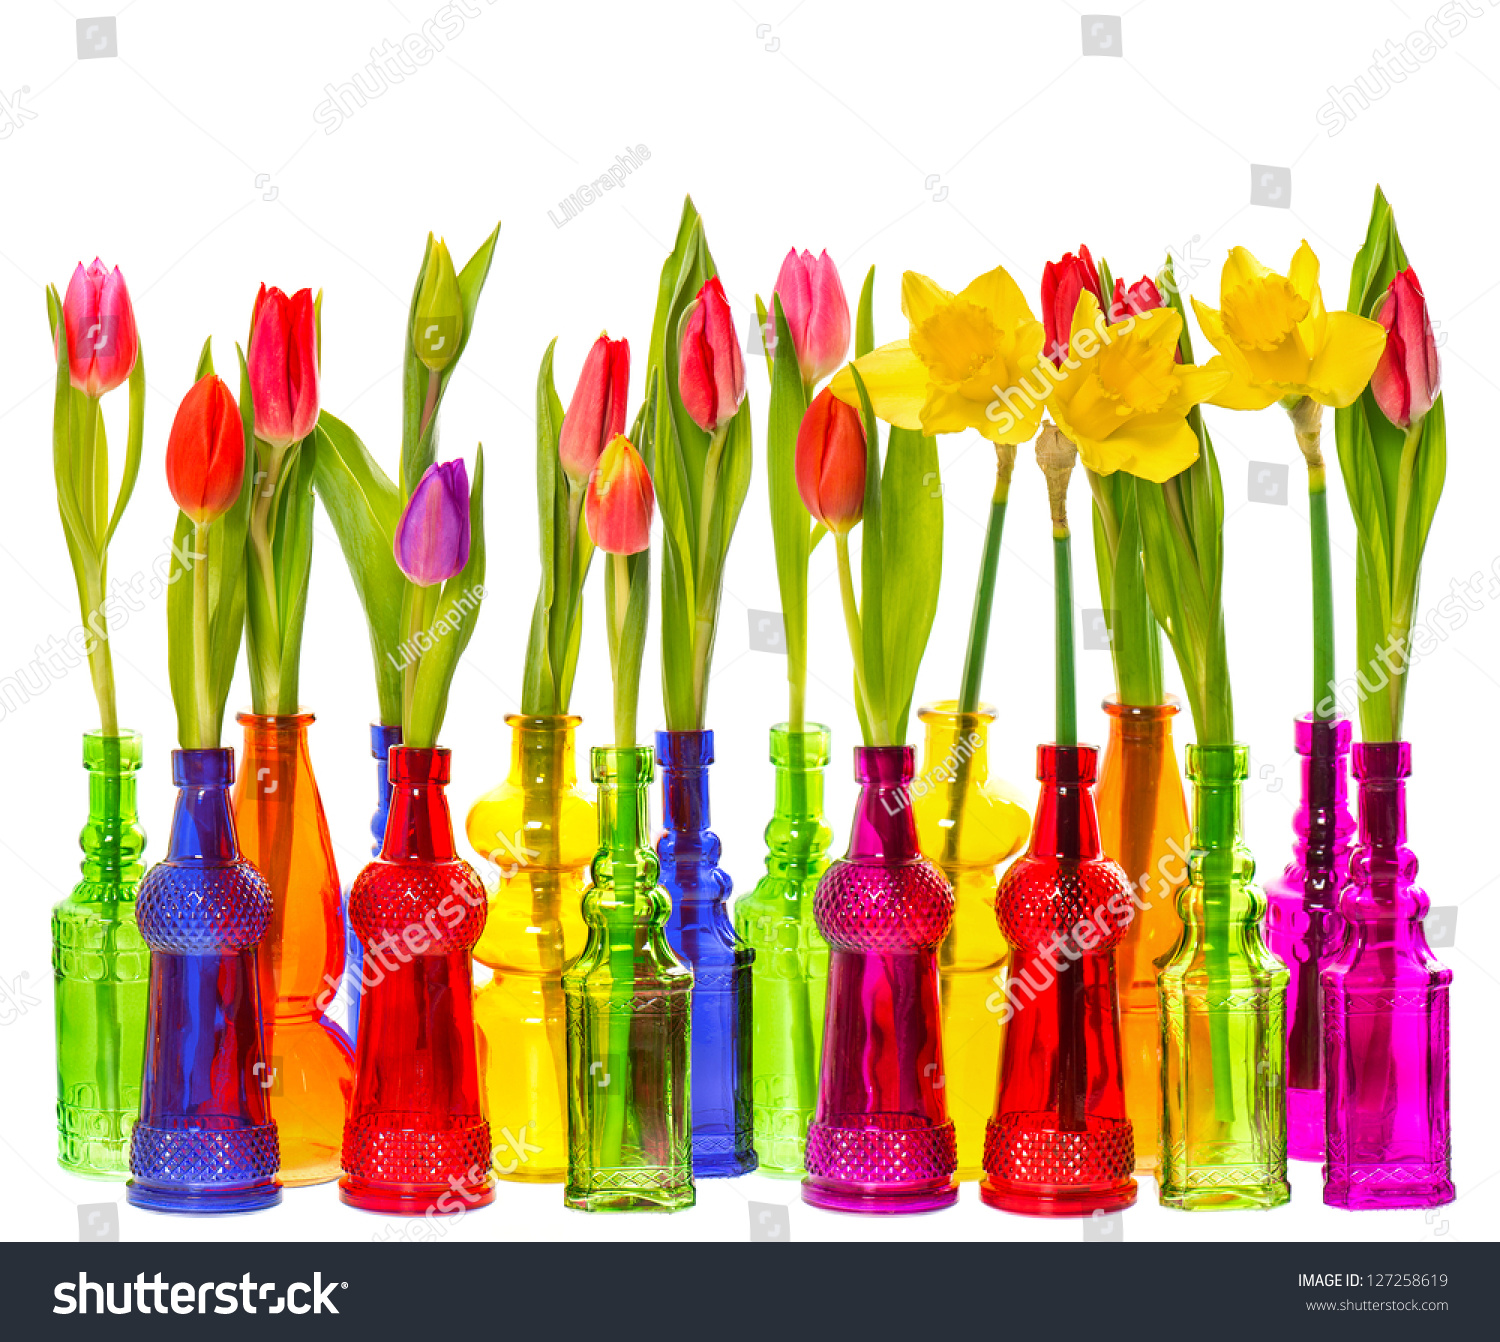 Many tulip narcissus flowers colorful glass stock photo 127258619 many tulip and narcissus flowers in colorful glass vases on white background reviewsmspy